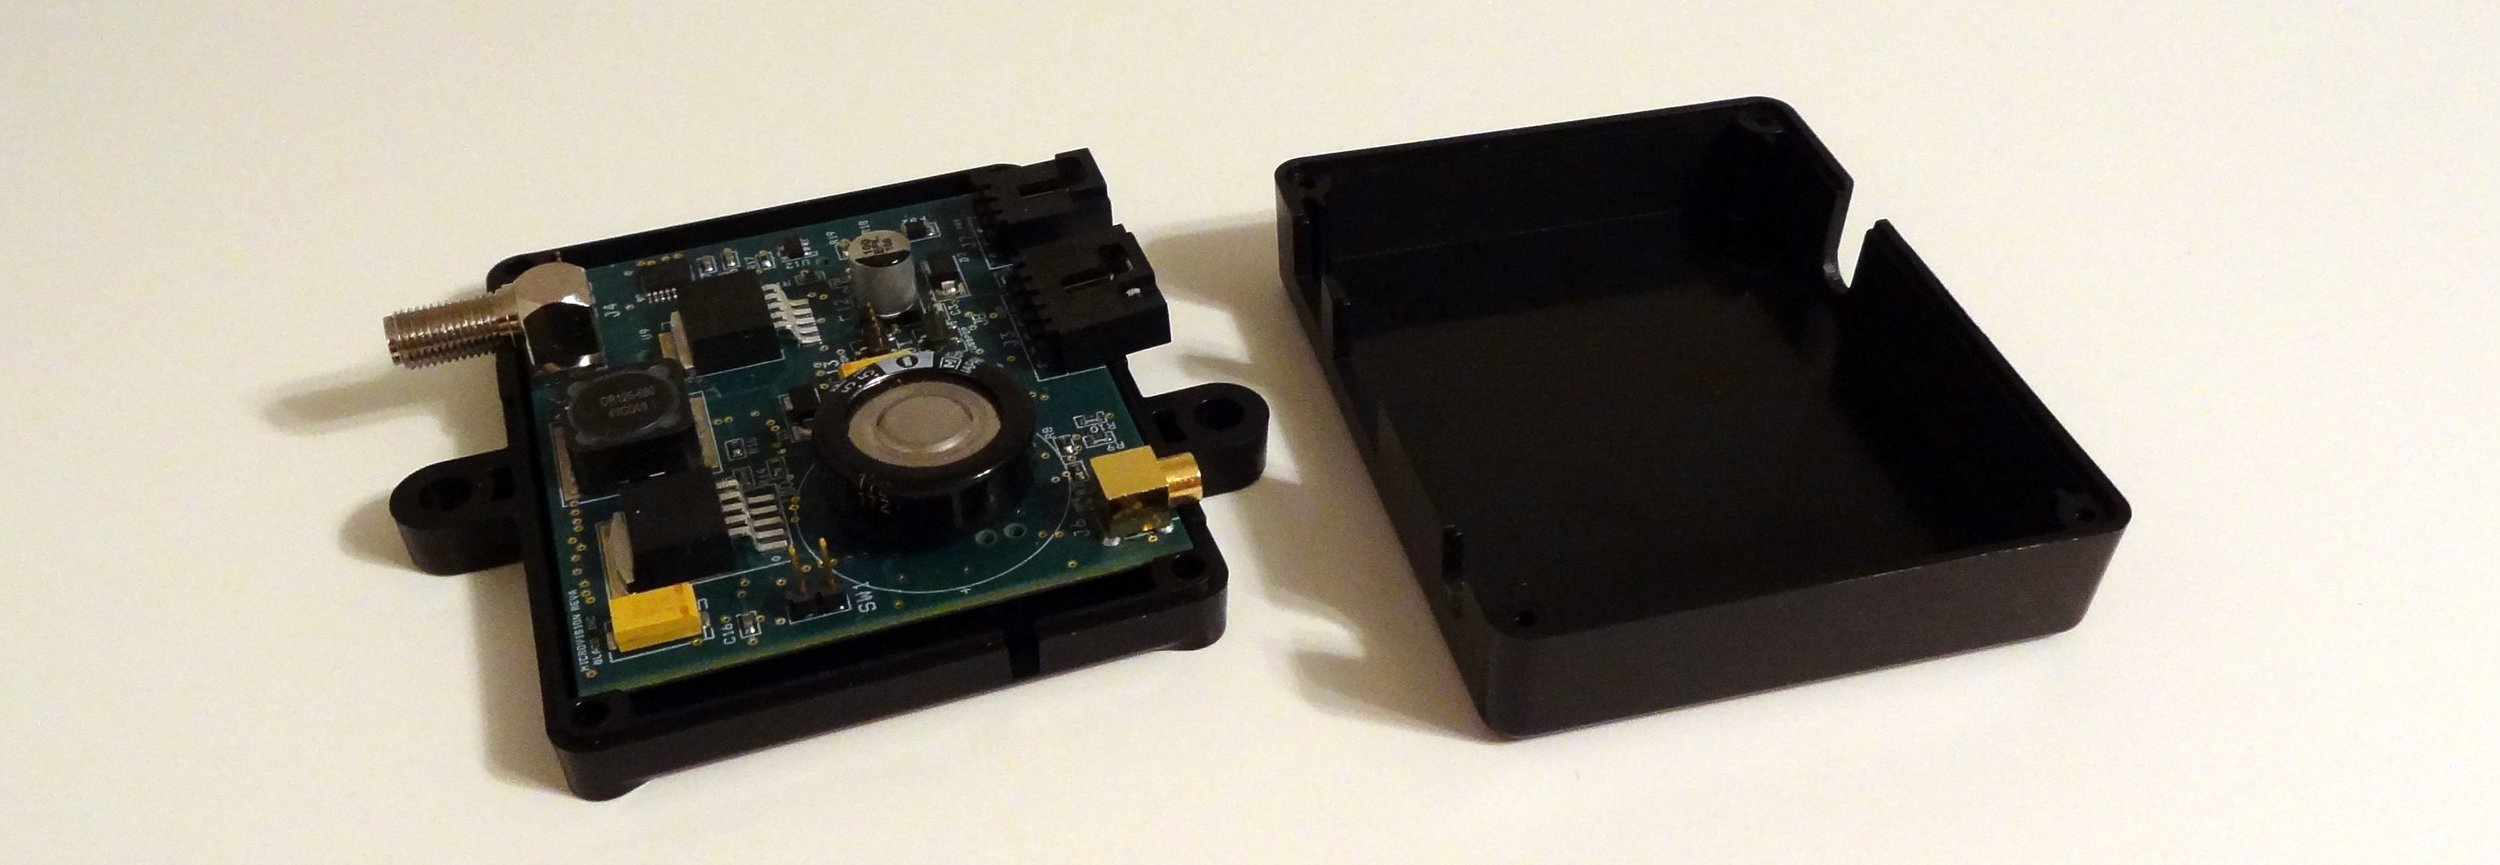 An example of a simple injection molded clamshell housing (via  partsnap )